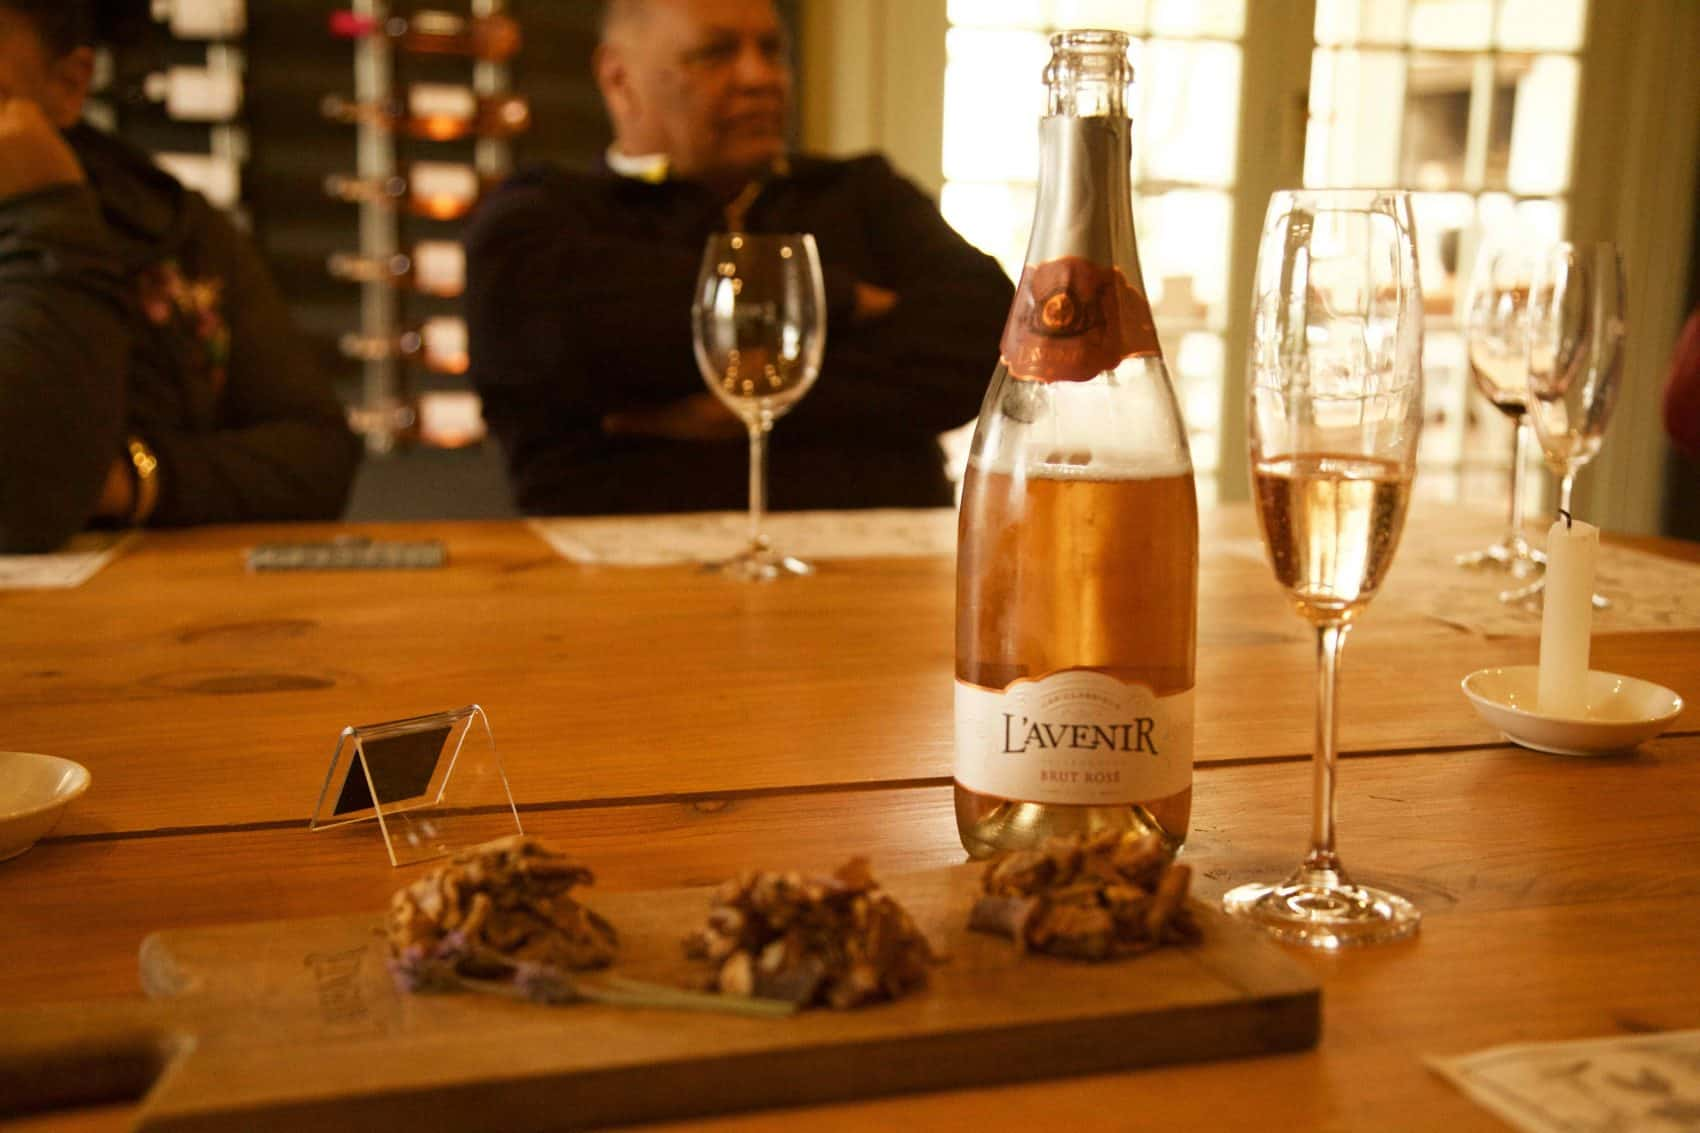 biltong and Wine at Lavenir